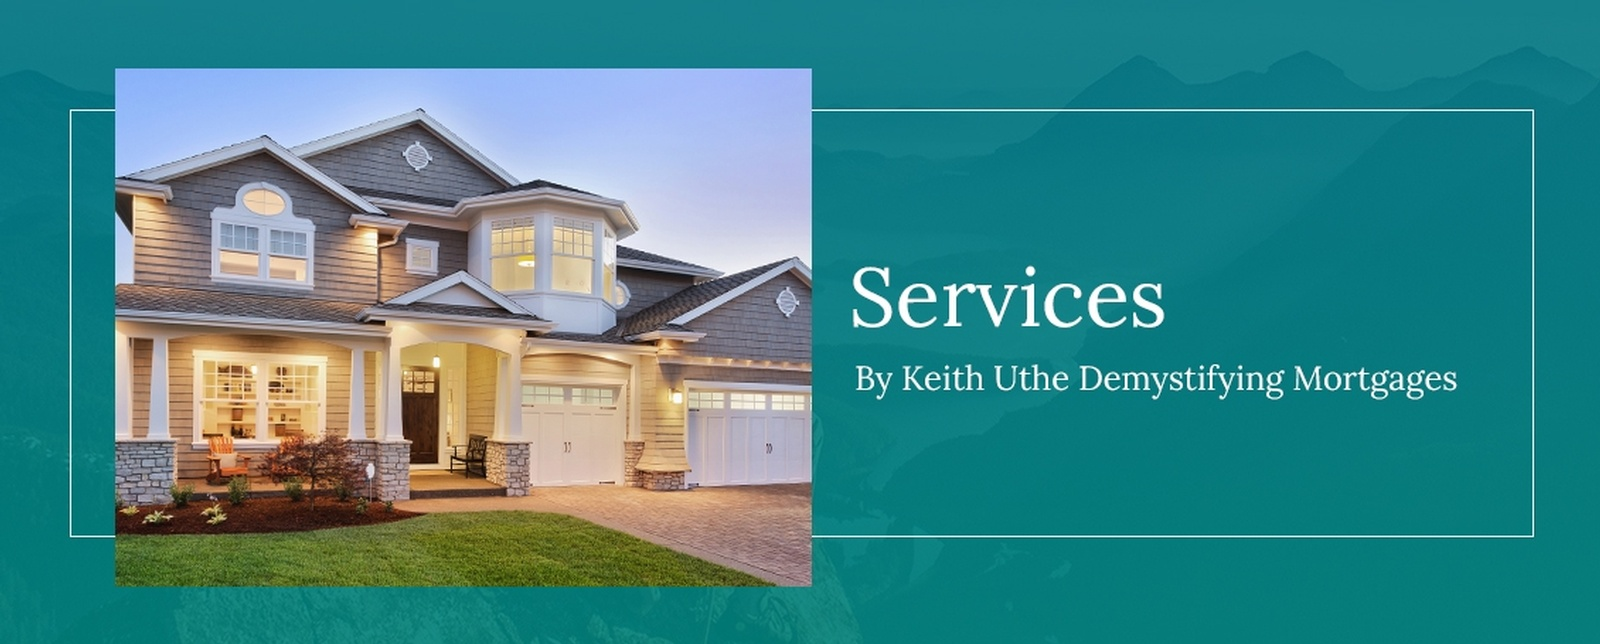 Mortgage Services Calgary AB by Keith Uthe Demystifying Mortgages